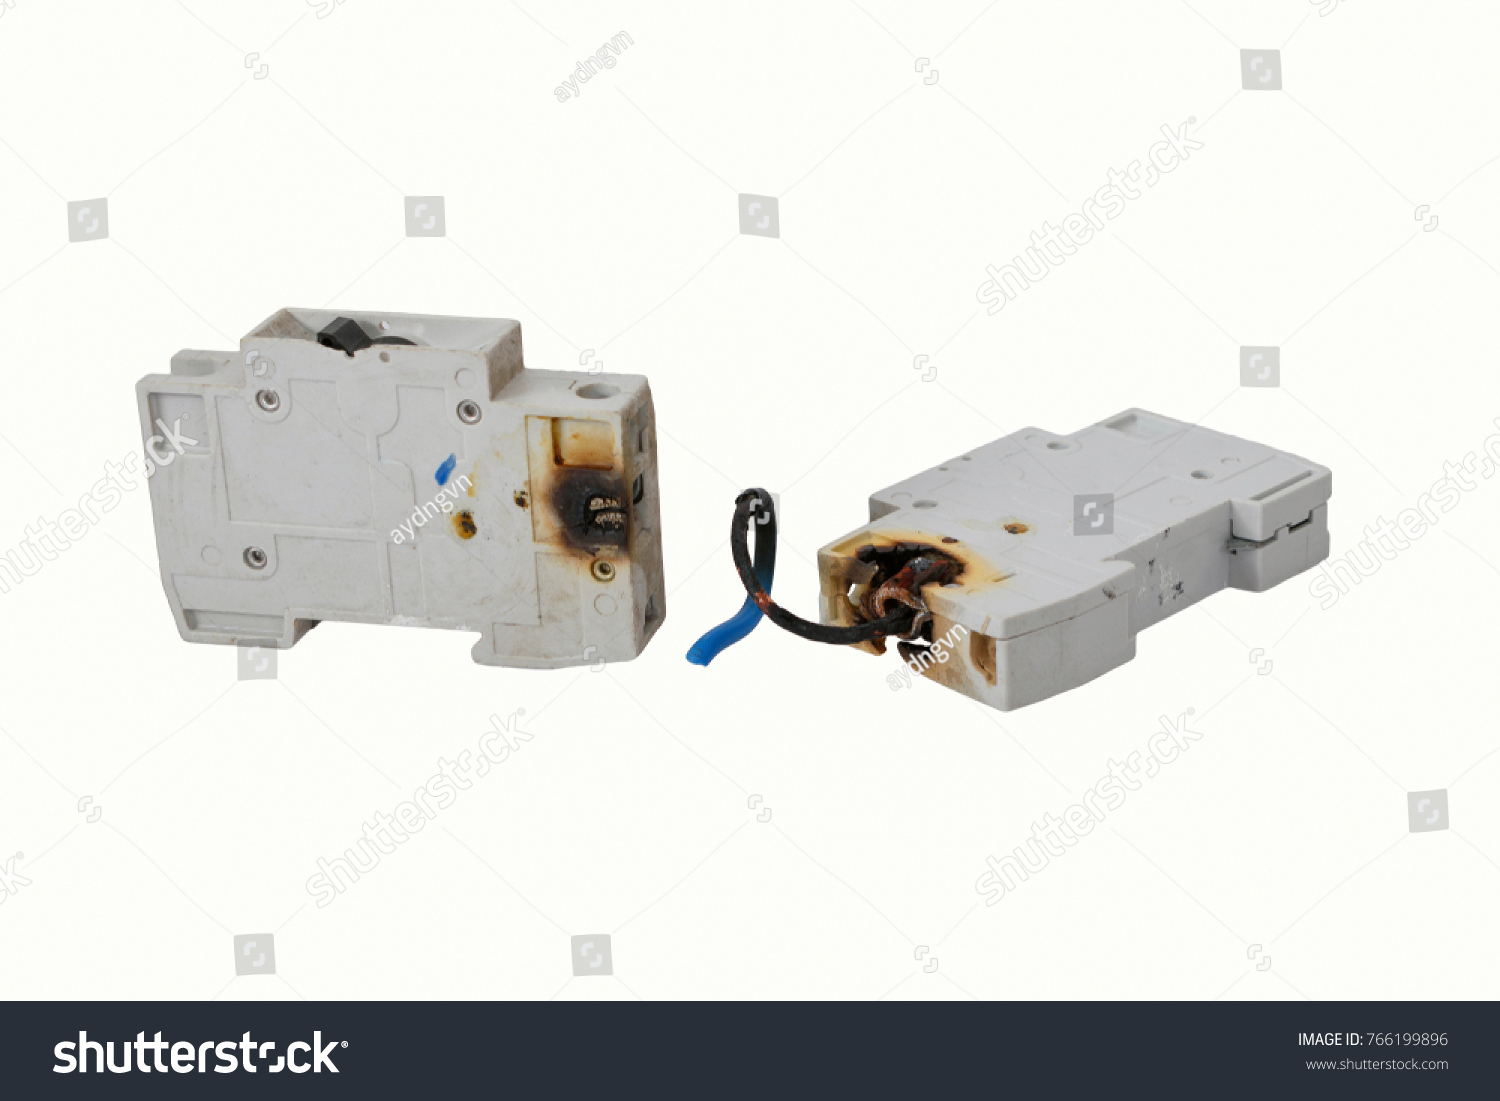 burned electrical circuit breaker fuse box stock photo edit now rh shutterstock com Bit Breaker Box Old Breaker Box